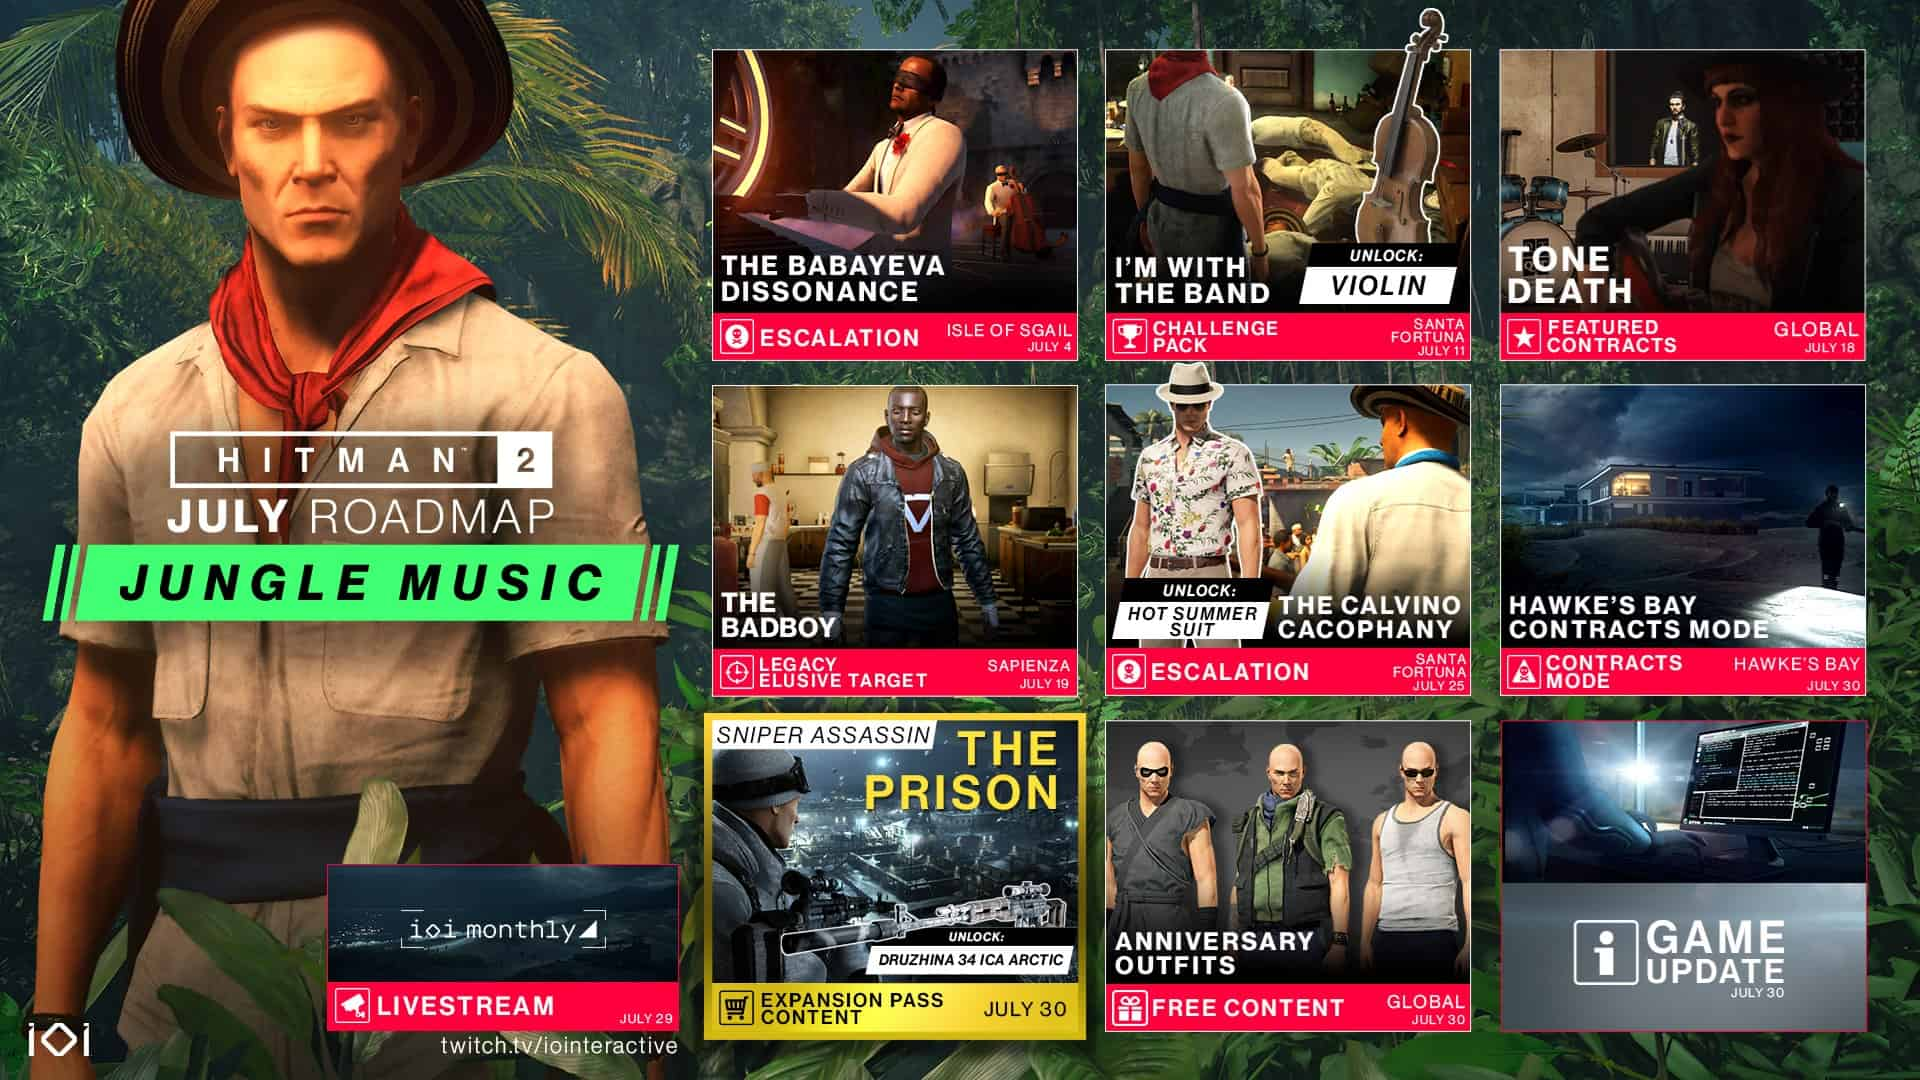 Hitman 2 July 2019 Content Roadmap Reveals Next Sniper Assassin Map: The Prison – Along With A New Challenge Pack, Contracts, Escalations And More